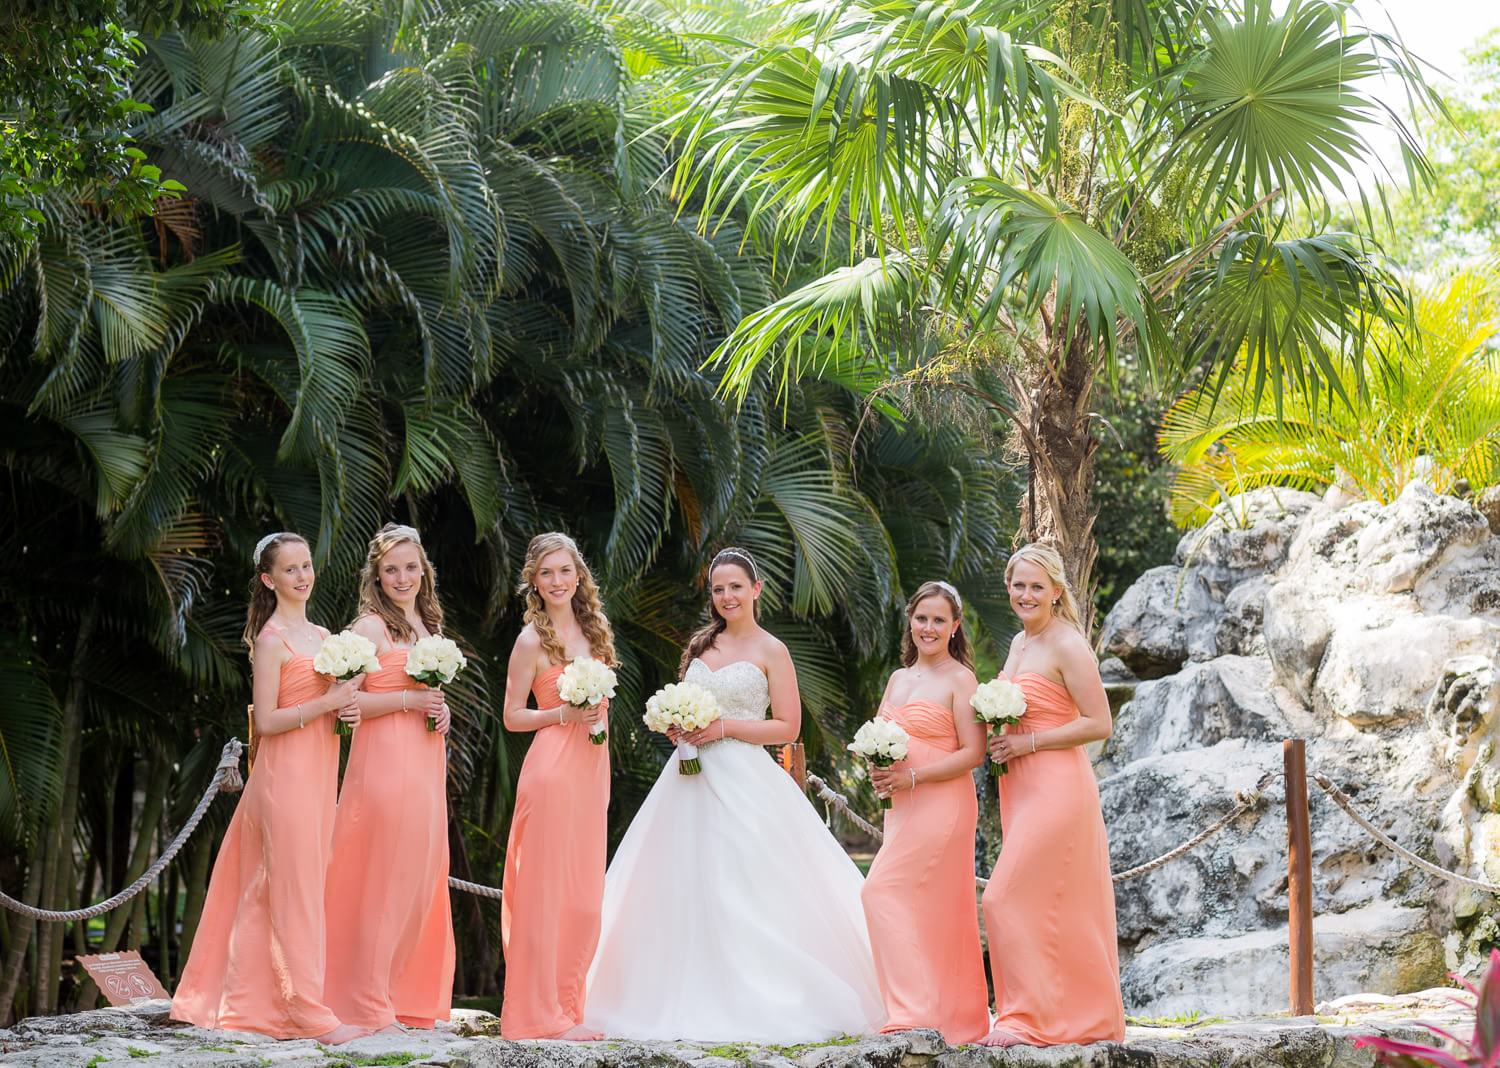 Bridesmaids at wedding in Mexico